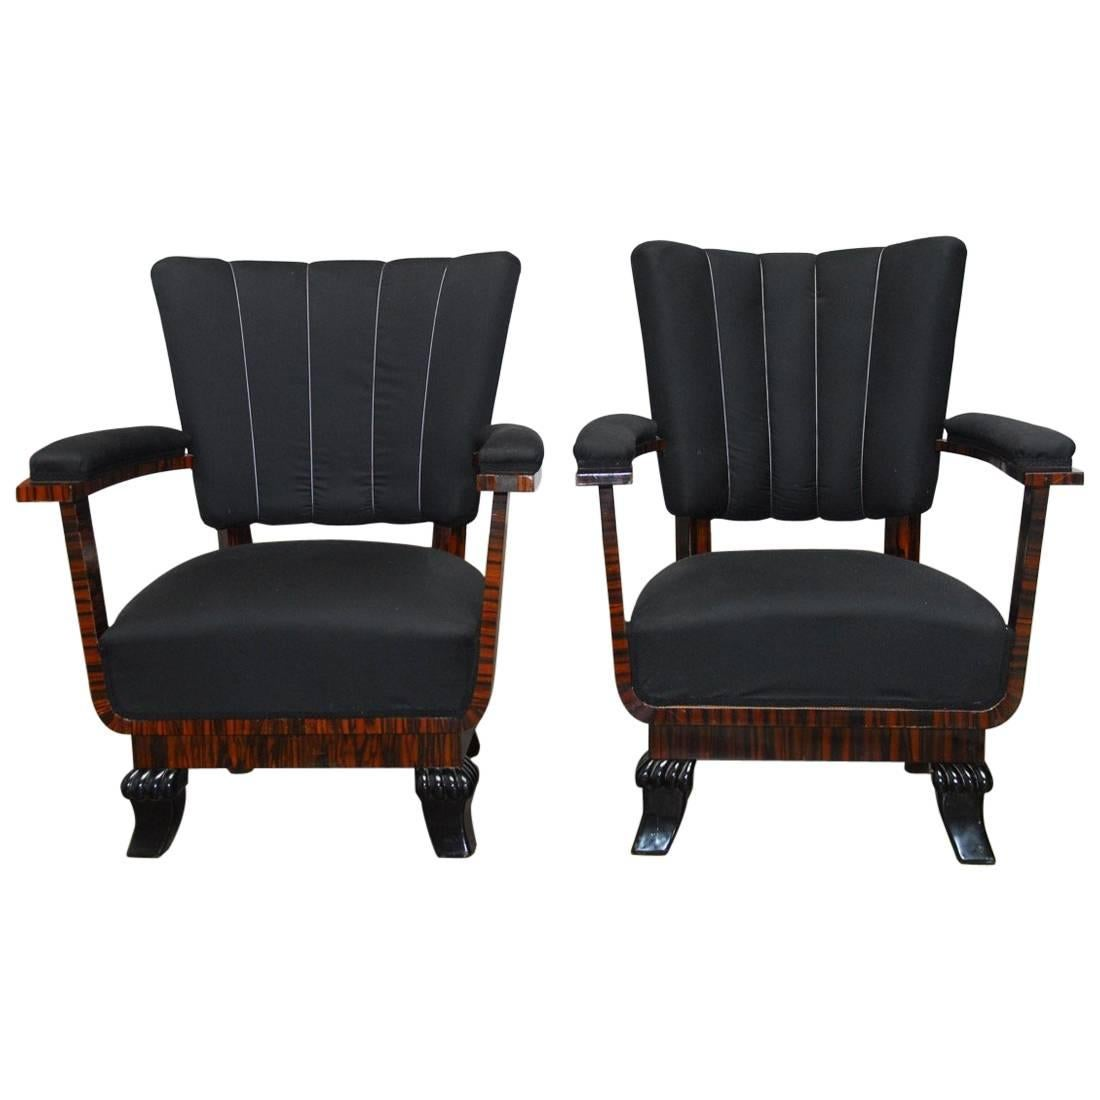 Pair of French Art Deco Macassar Club Chairs